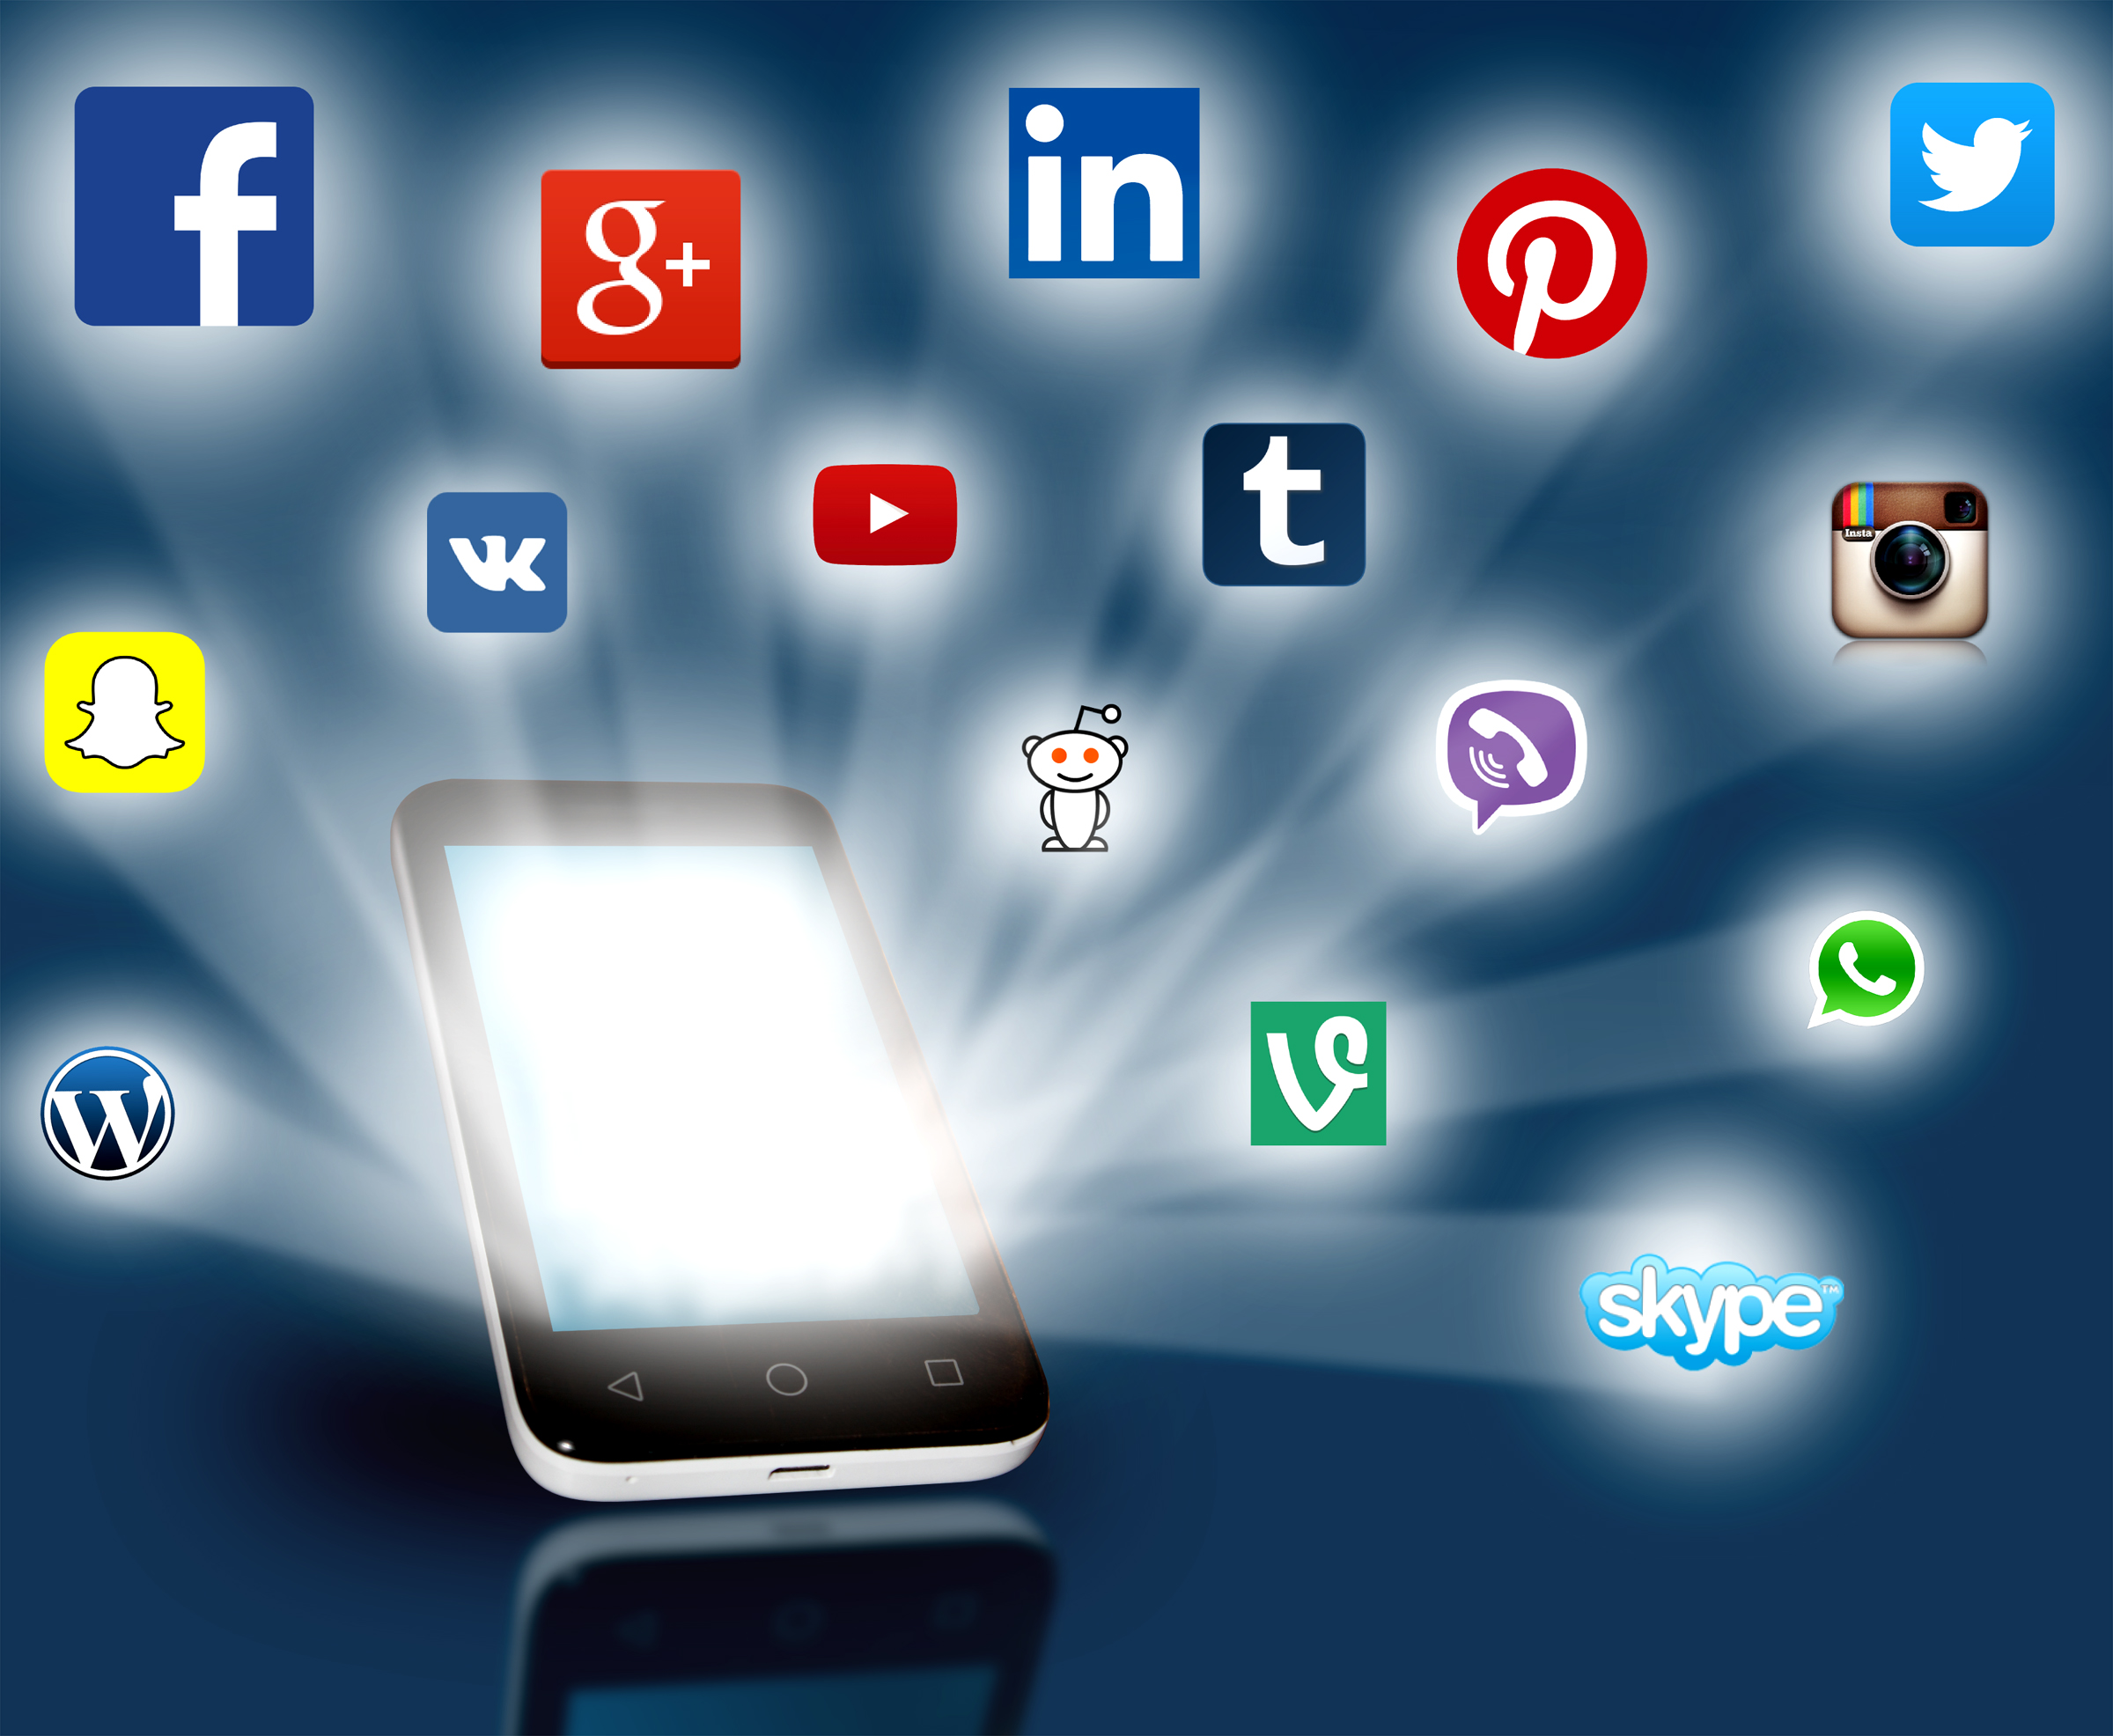 Social media networks projecting out from smartphone. Editorial use only